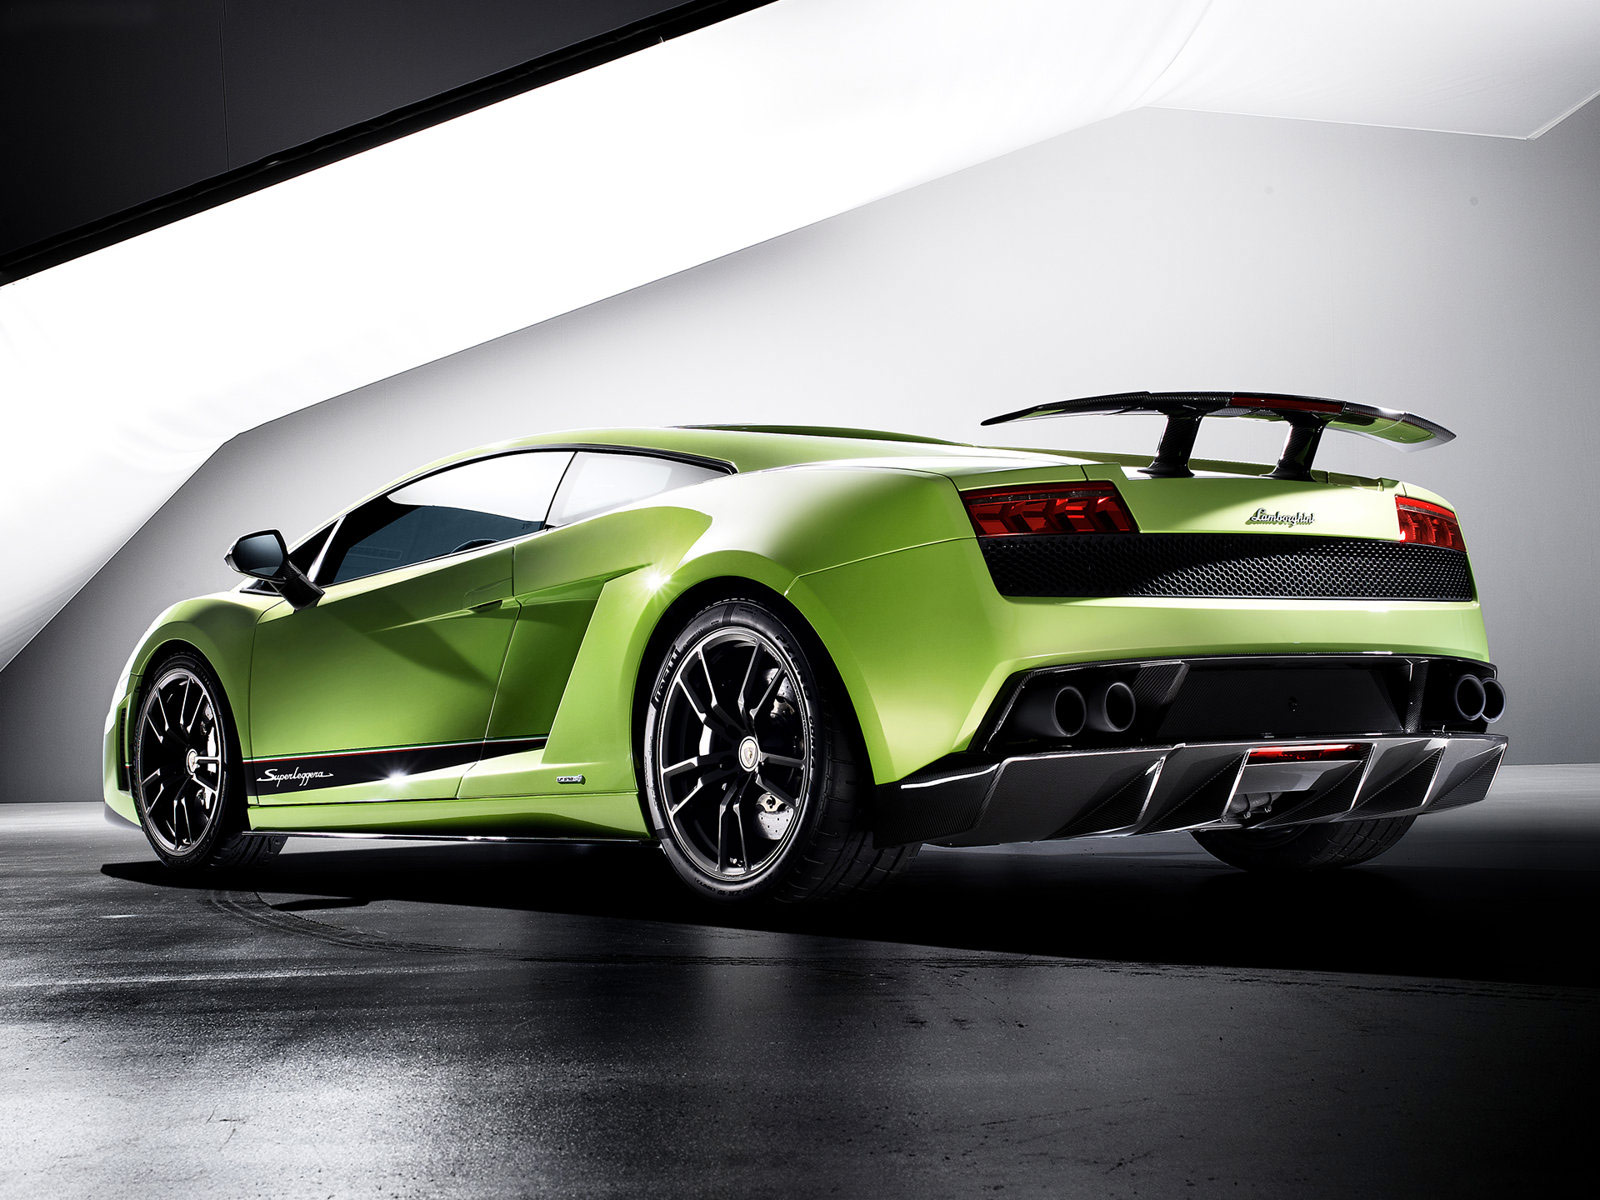 Zedge | Forums: Do U prefer Lamborghini or Ferrari? - page 20 ...